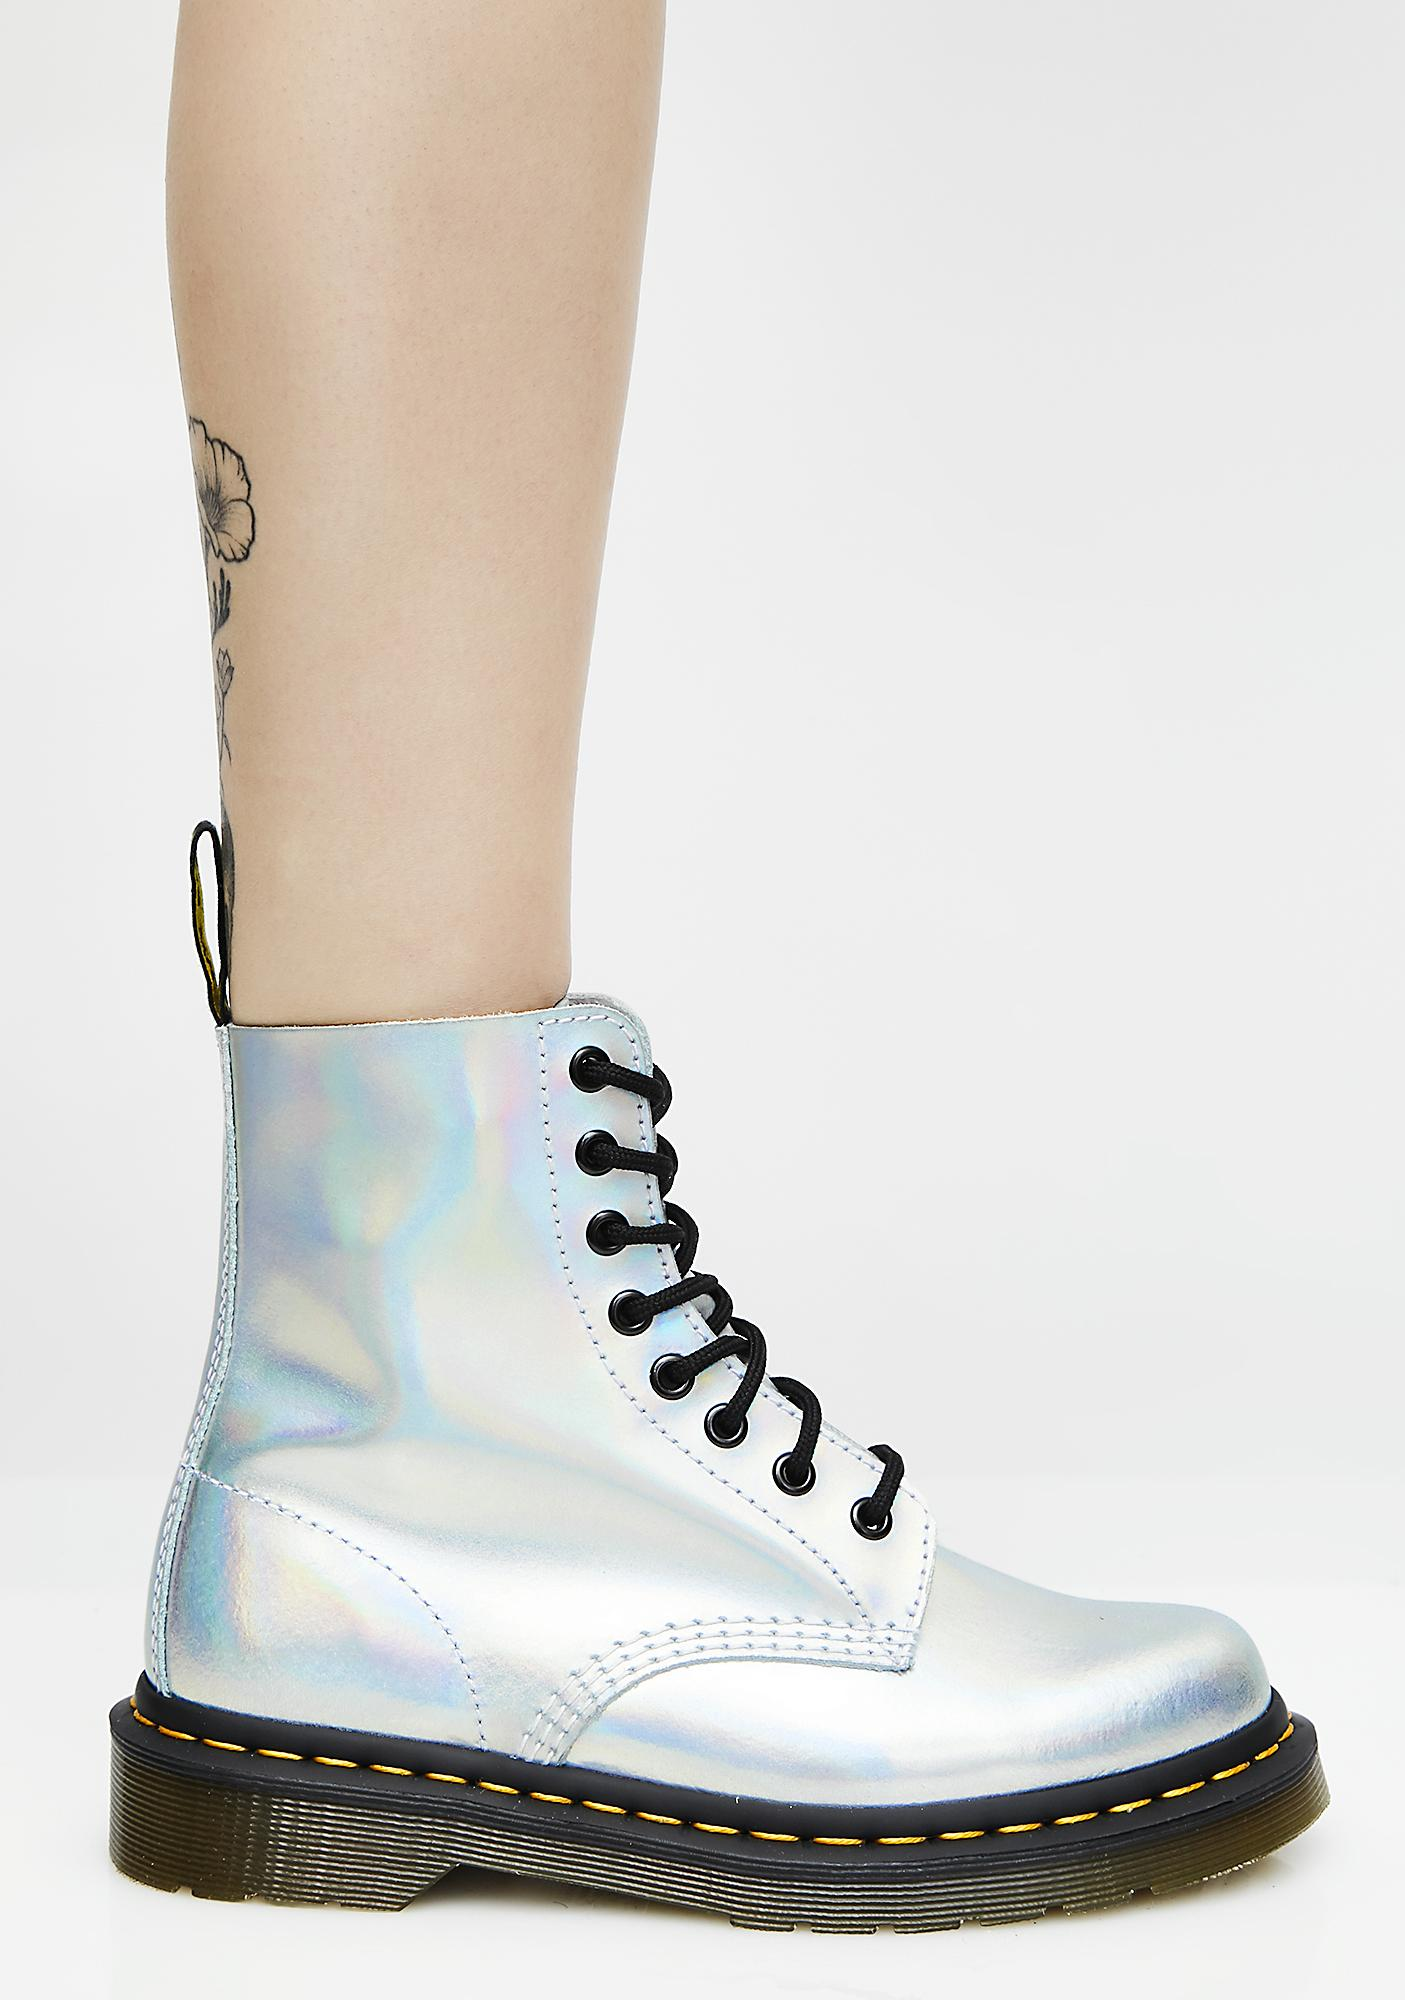 Dr. Martens Silver Iced Metallic Pascal Boots